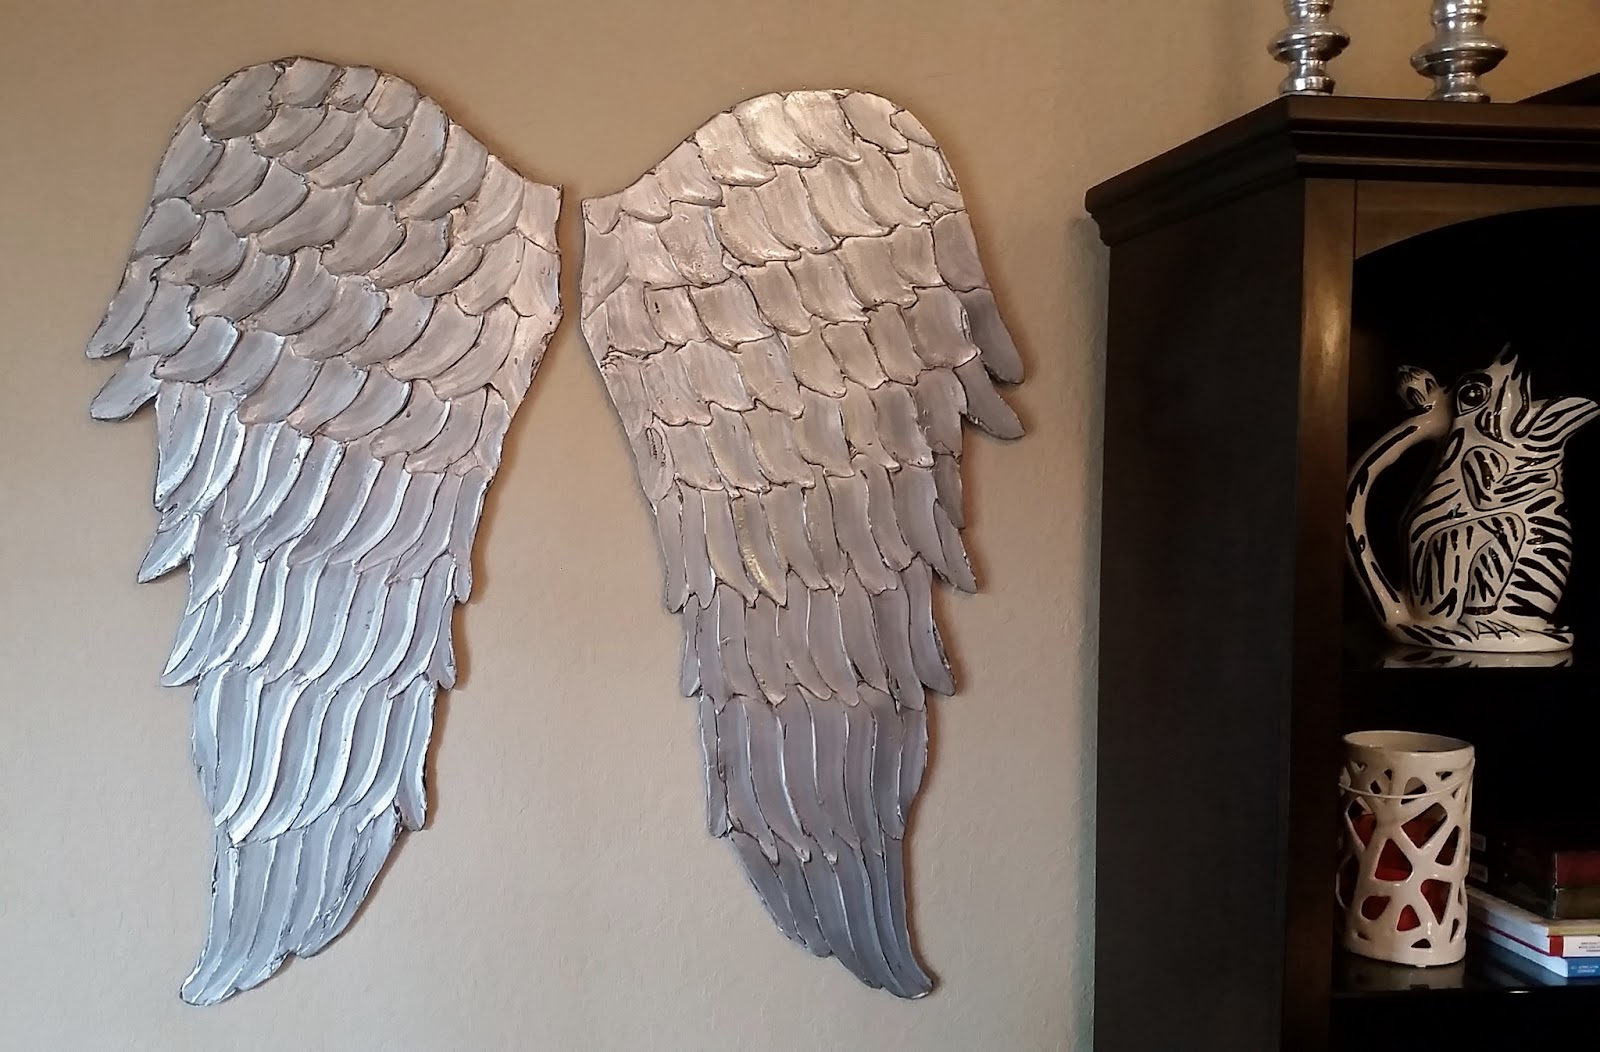 Merveilleux Stunning Angel Wings Art In Silver